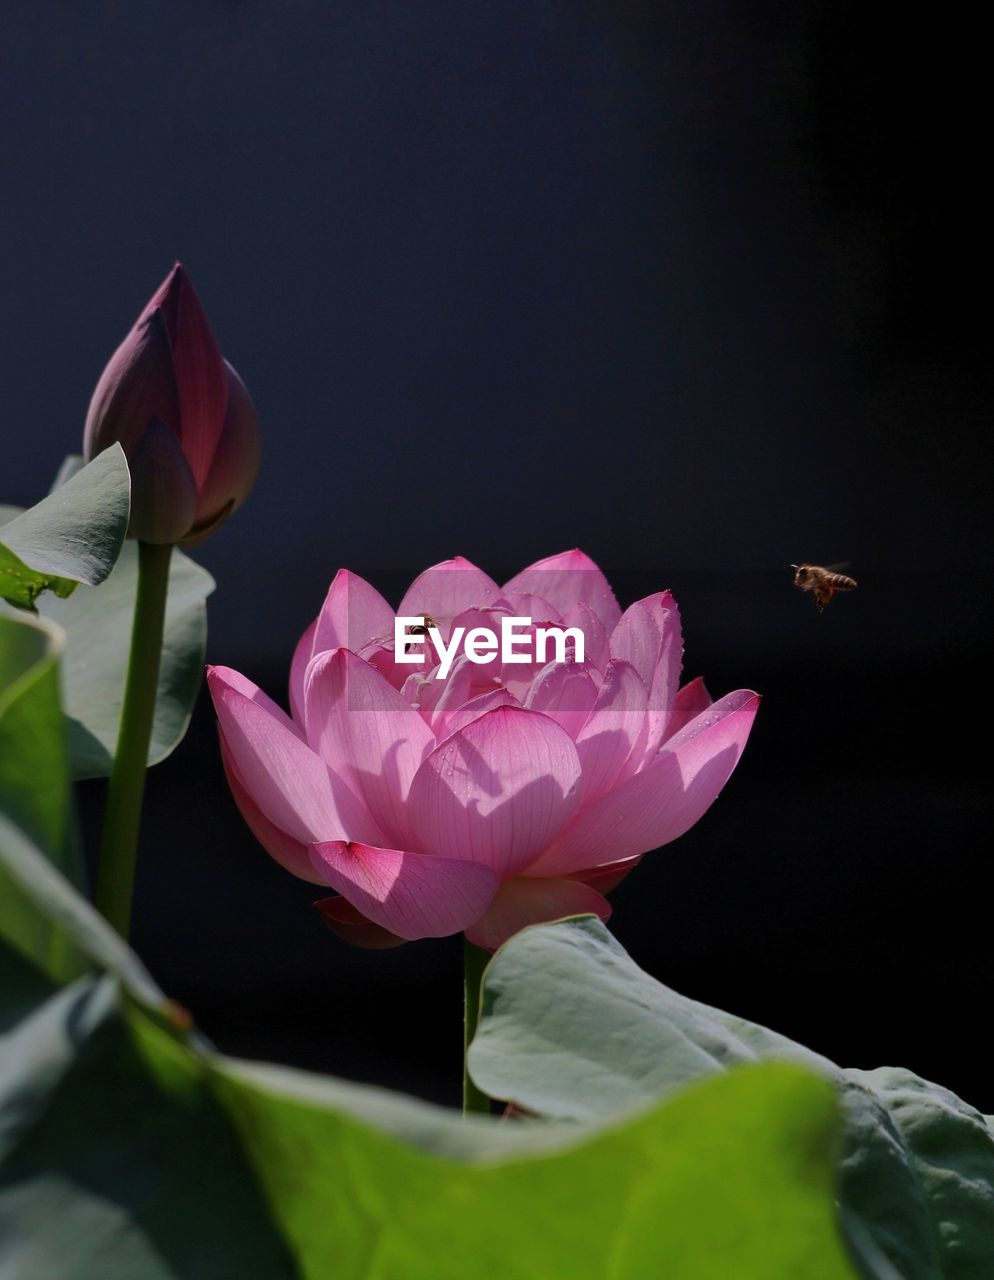 flowering plant, flower, petal, beauty in nature, plant, fragility, vulnerability, freshness, pink color, close-up, inflorescence, flower head, nature, growth, leaf, plant part, water lily, no people, rose, lotus water lily, outdoors, black background